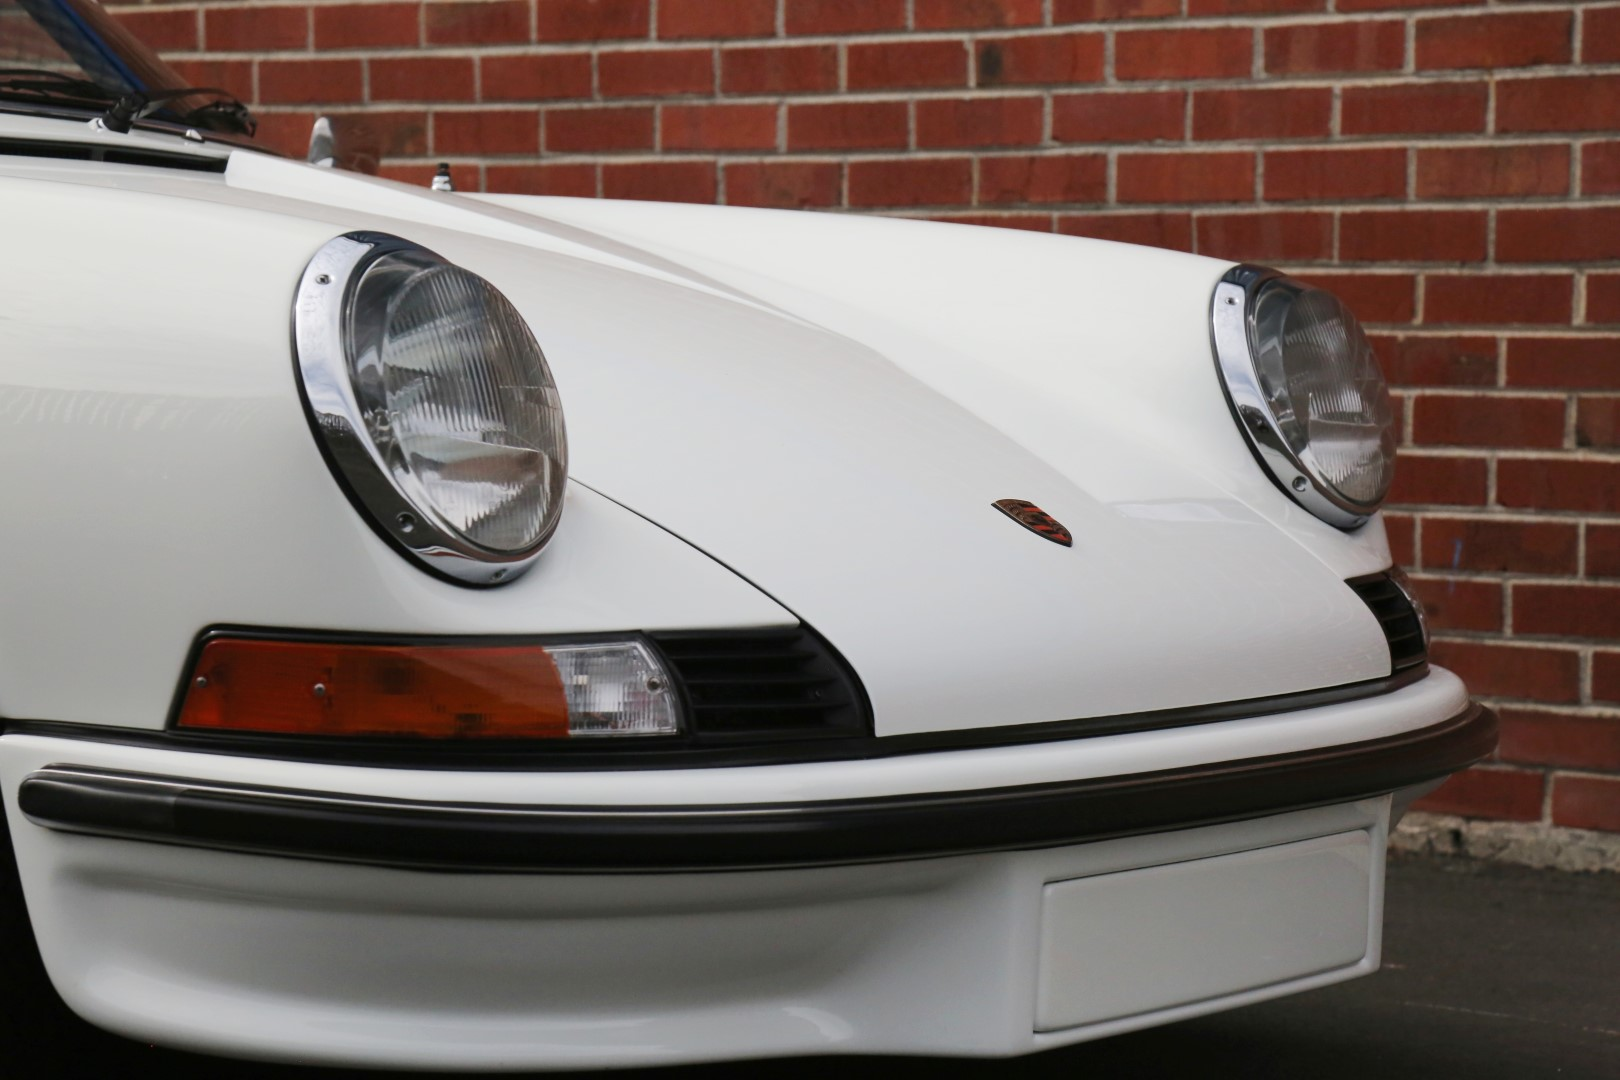 Porsche-911-Carrera-RS-2.7-1973-for-sale-5